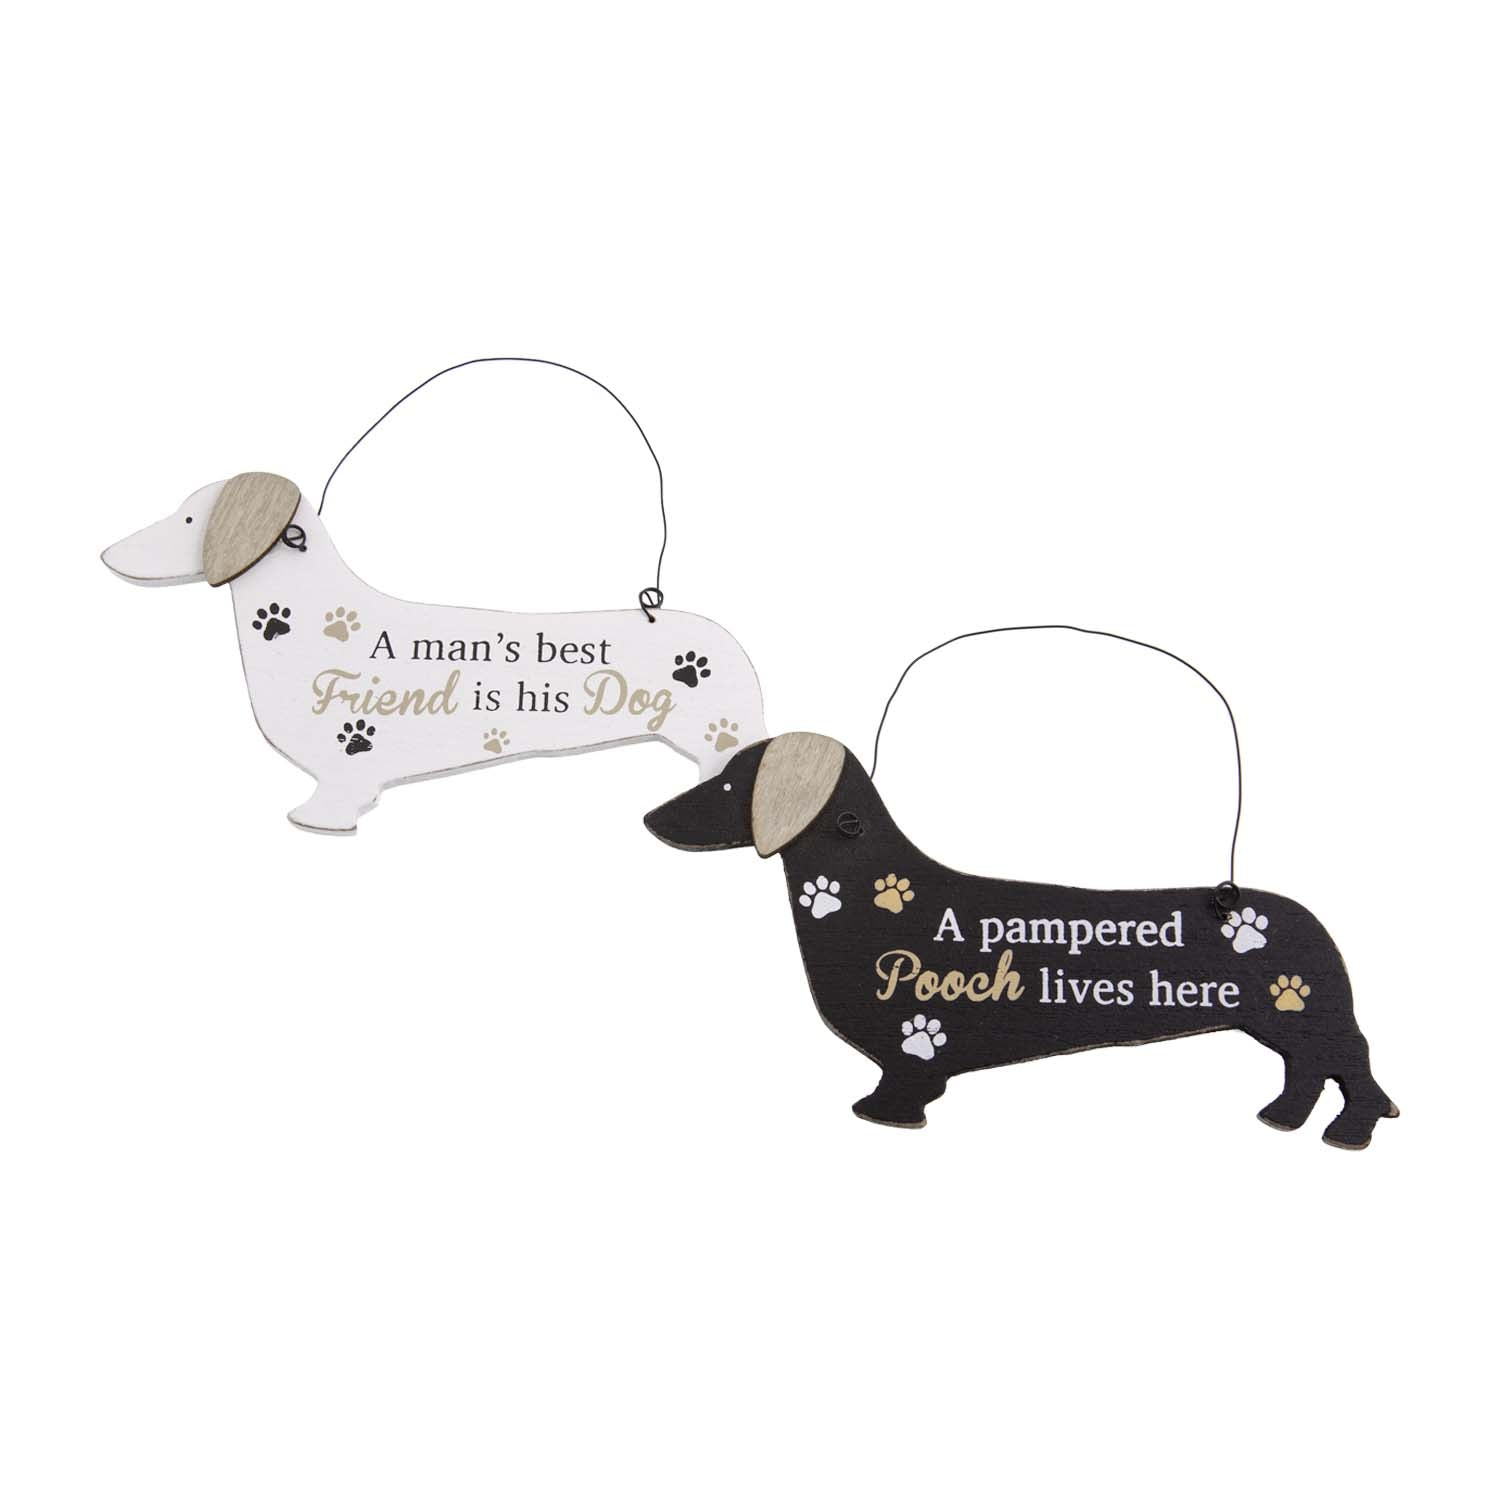 Dog Lover Gifts – White Dachshund Hanging Sign - Mans Best Friend, Just Part Of Our Collection Of Signs Available At www.dogkrazygifts.co.uk